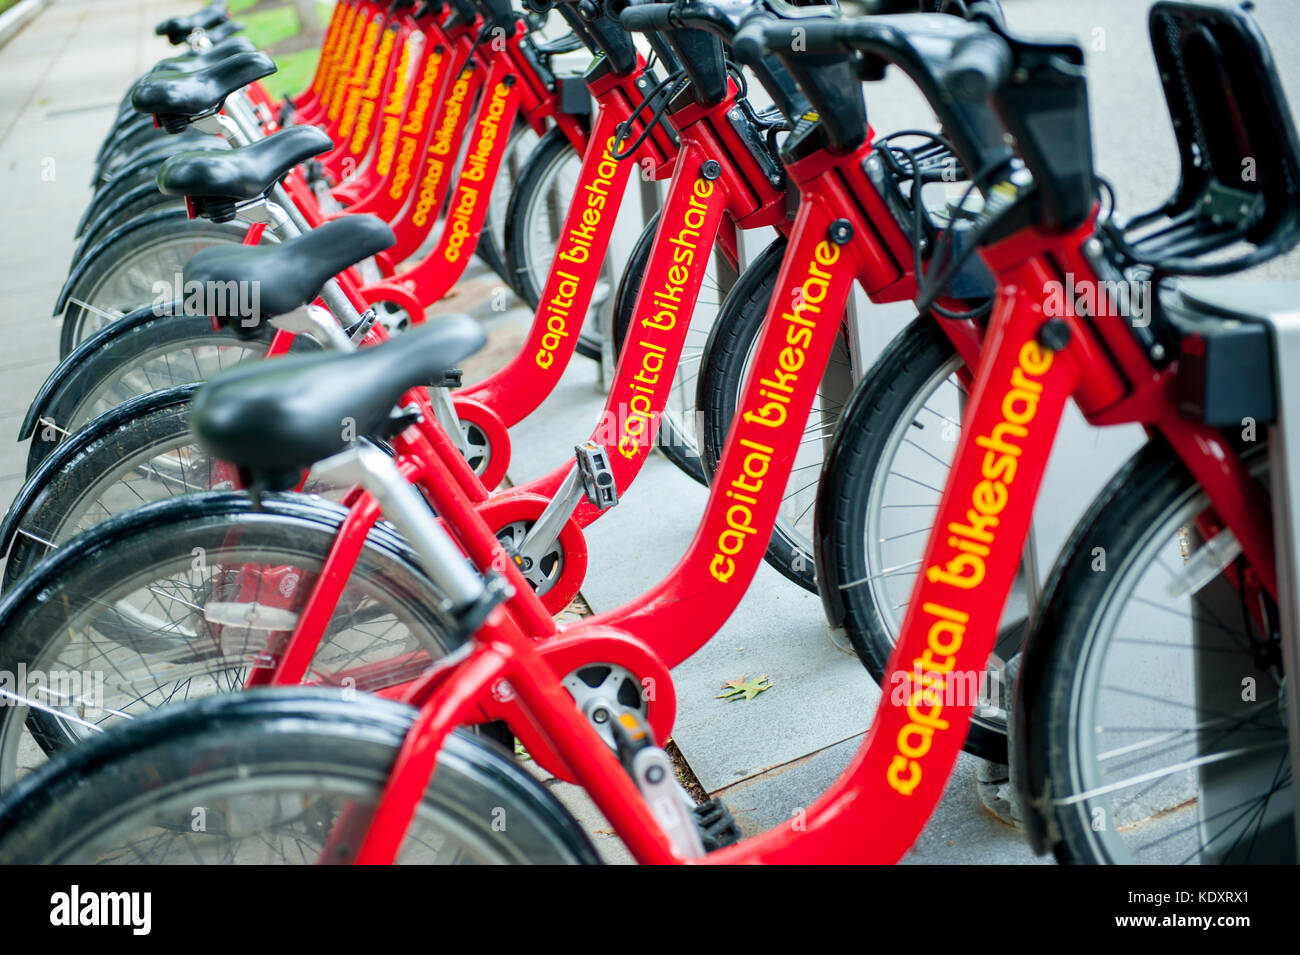 USA Wasington DC D.C. Capitol Bikeshare rental bicycles in the nations capital Stock Photo